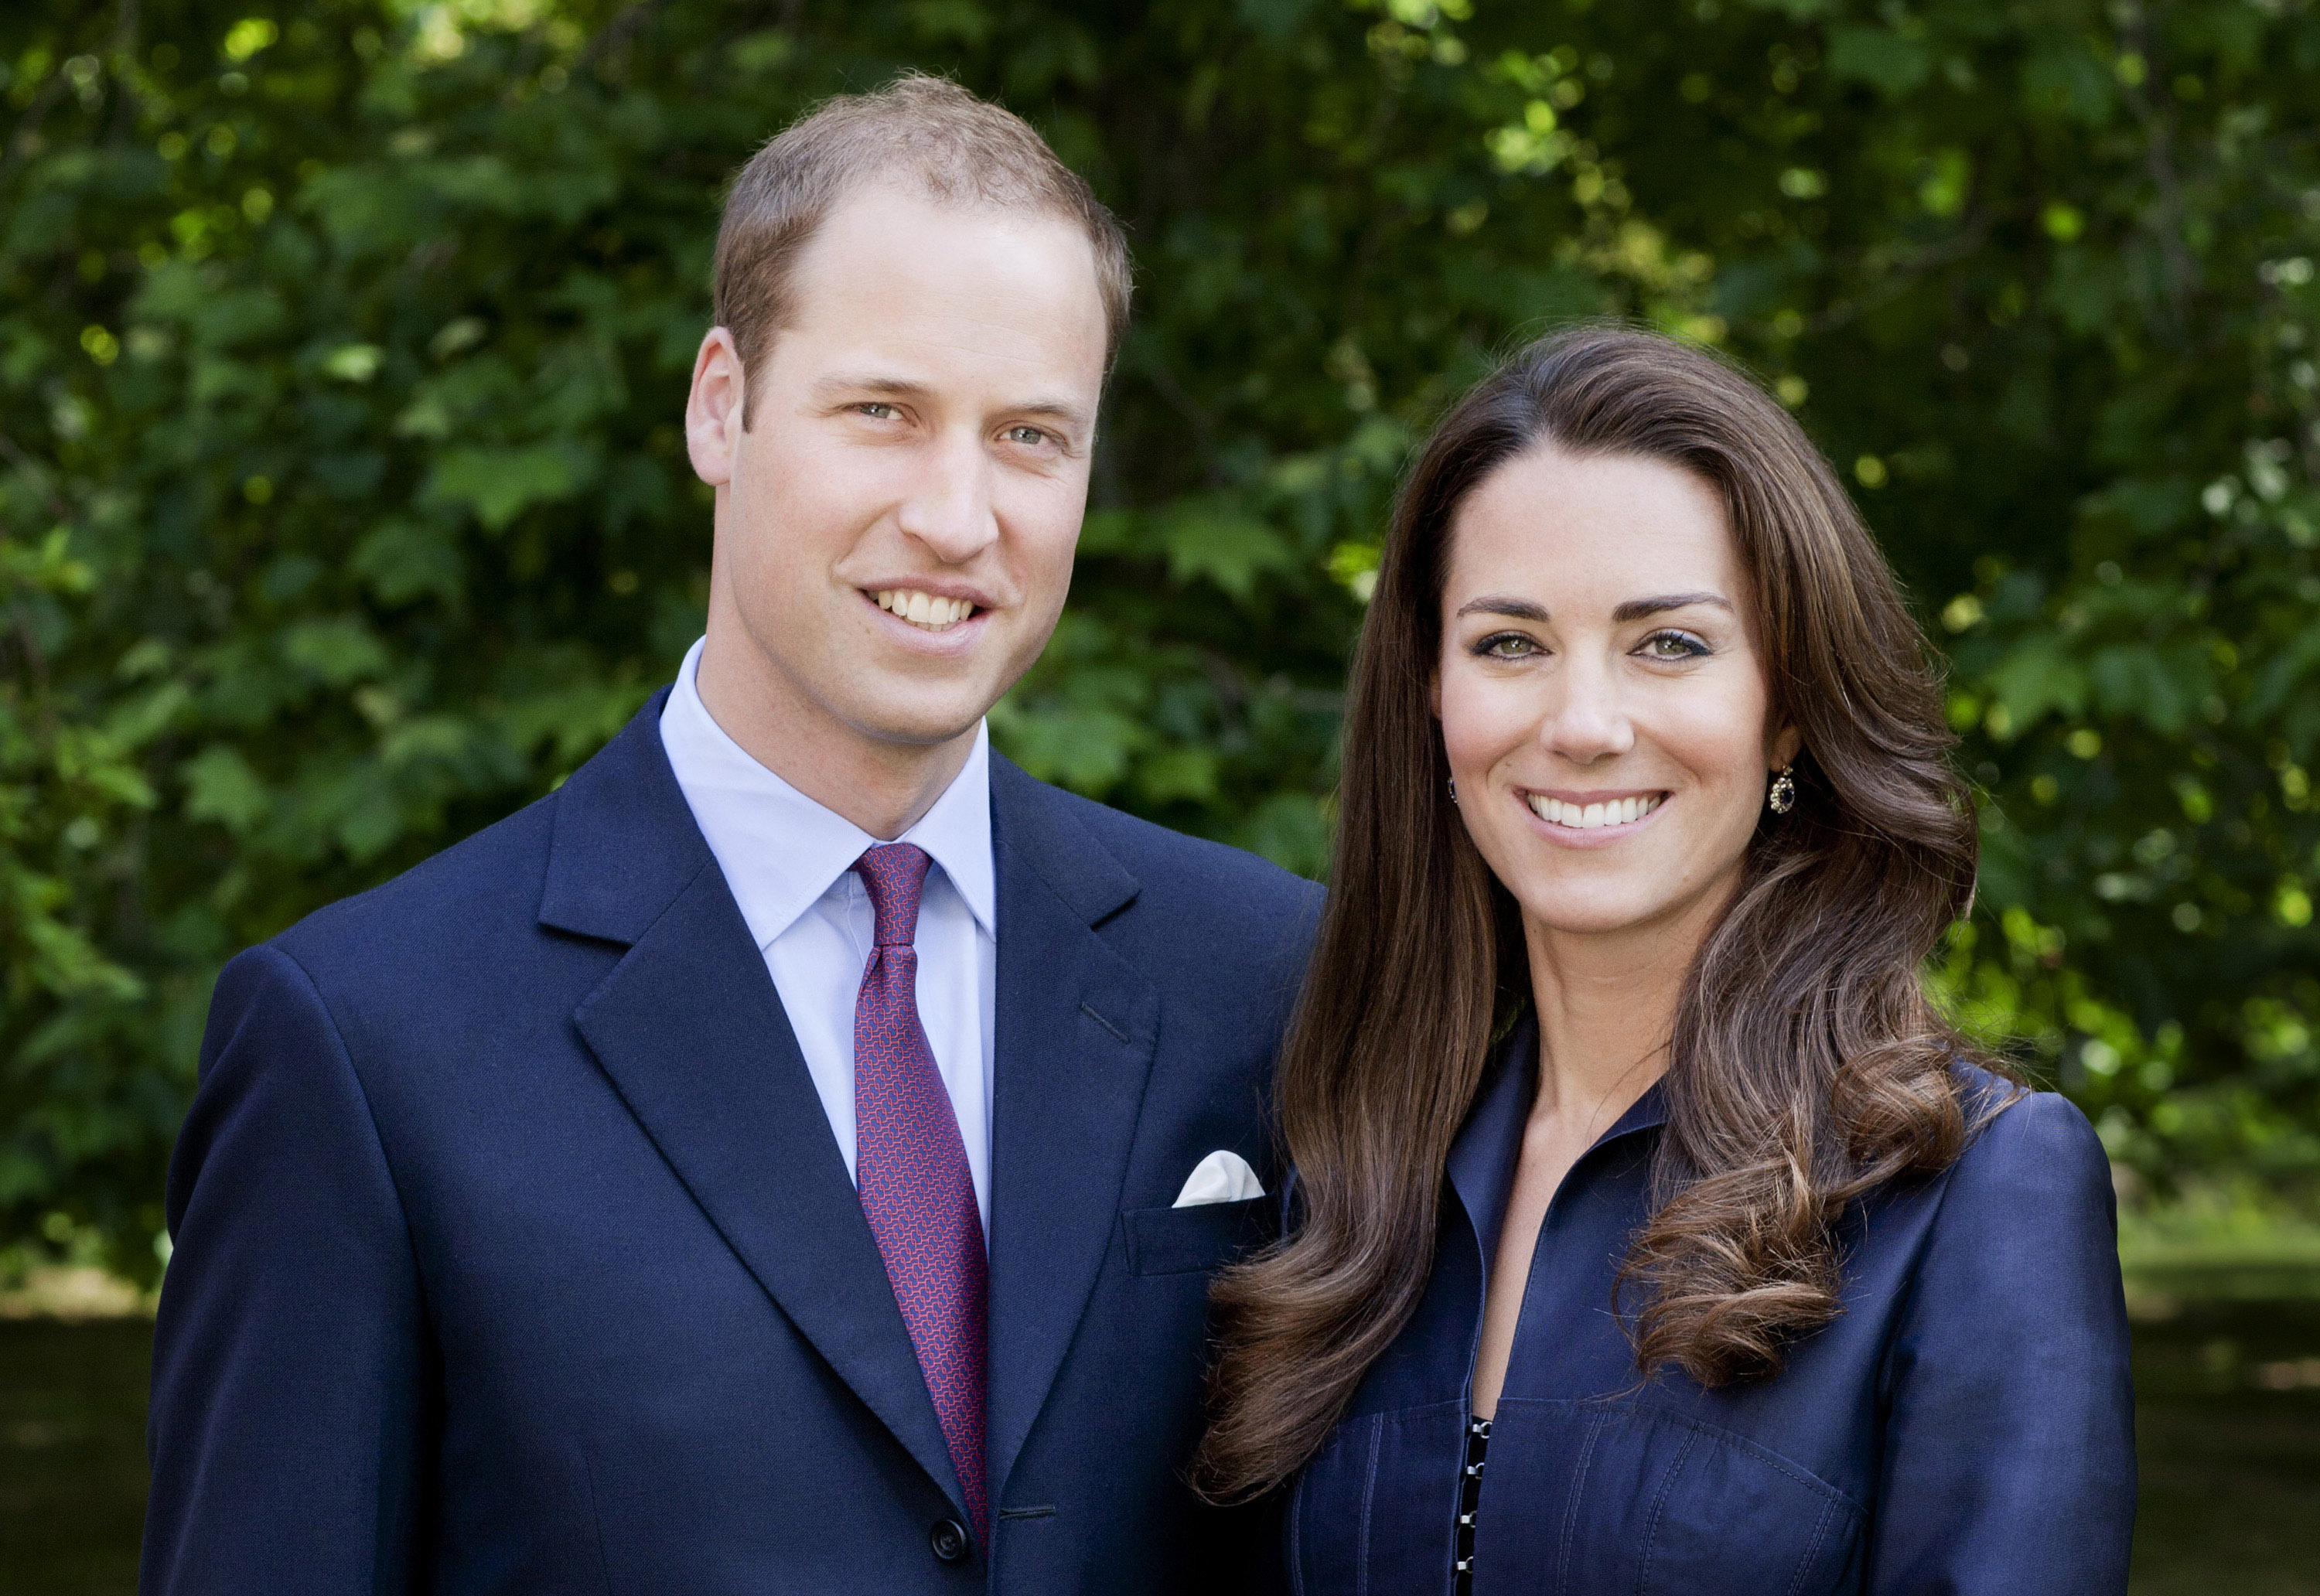 LONDON, UNITED KINGDOM - JUNE 3: (EDITORIAL USE ONLY) In this handout image supplied by St James's Palace, Prince William, Duke of Cambridge and Catherine, Duchess of Cambridge pose for the official tour portrait for their trip to Canada and California in the Garden's of Clarence House on June 3, 2011 in London. England. The newly married Royal Couple will be undertaking their first official joint tour to Canada and California from June 30th. The trip will begin with Canada Celebrations in Ottawa and include highlights such as the Calgary Stampede and a visit to Yellowknife. (Photo by Chris Jackson / Getty Images for St James's Palace)